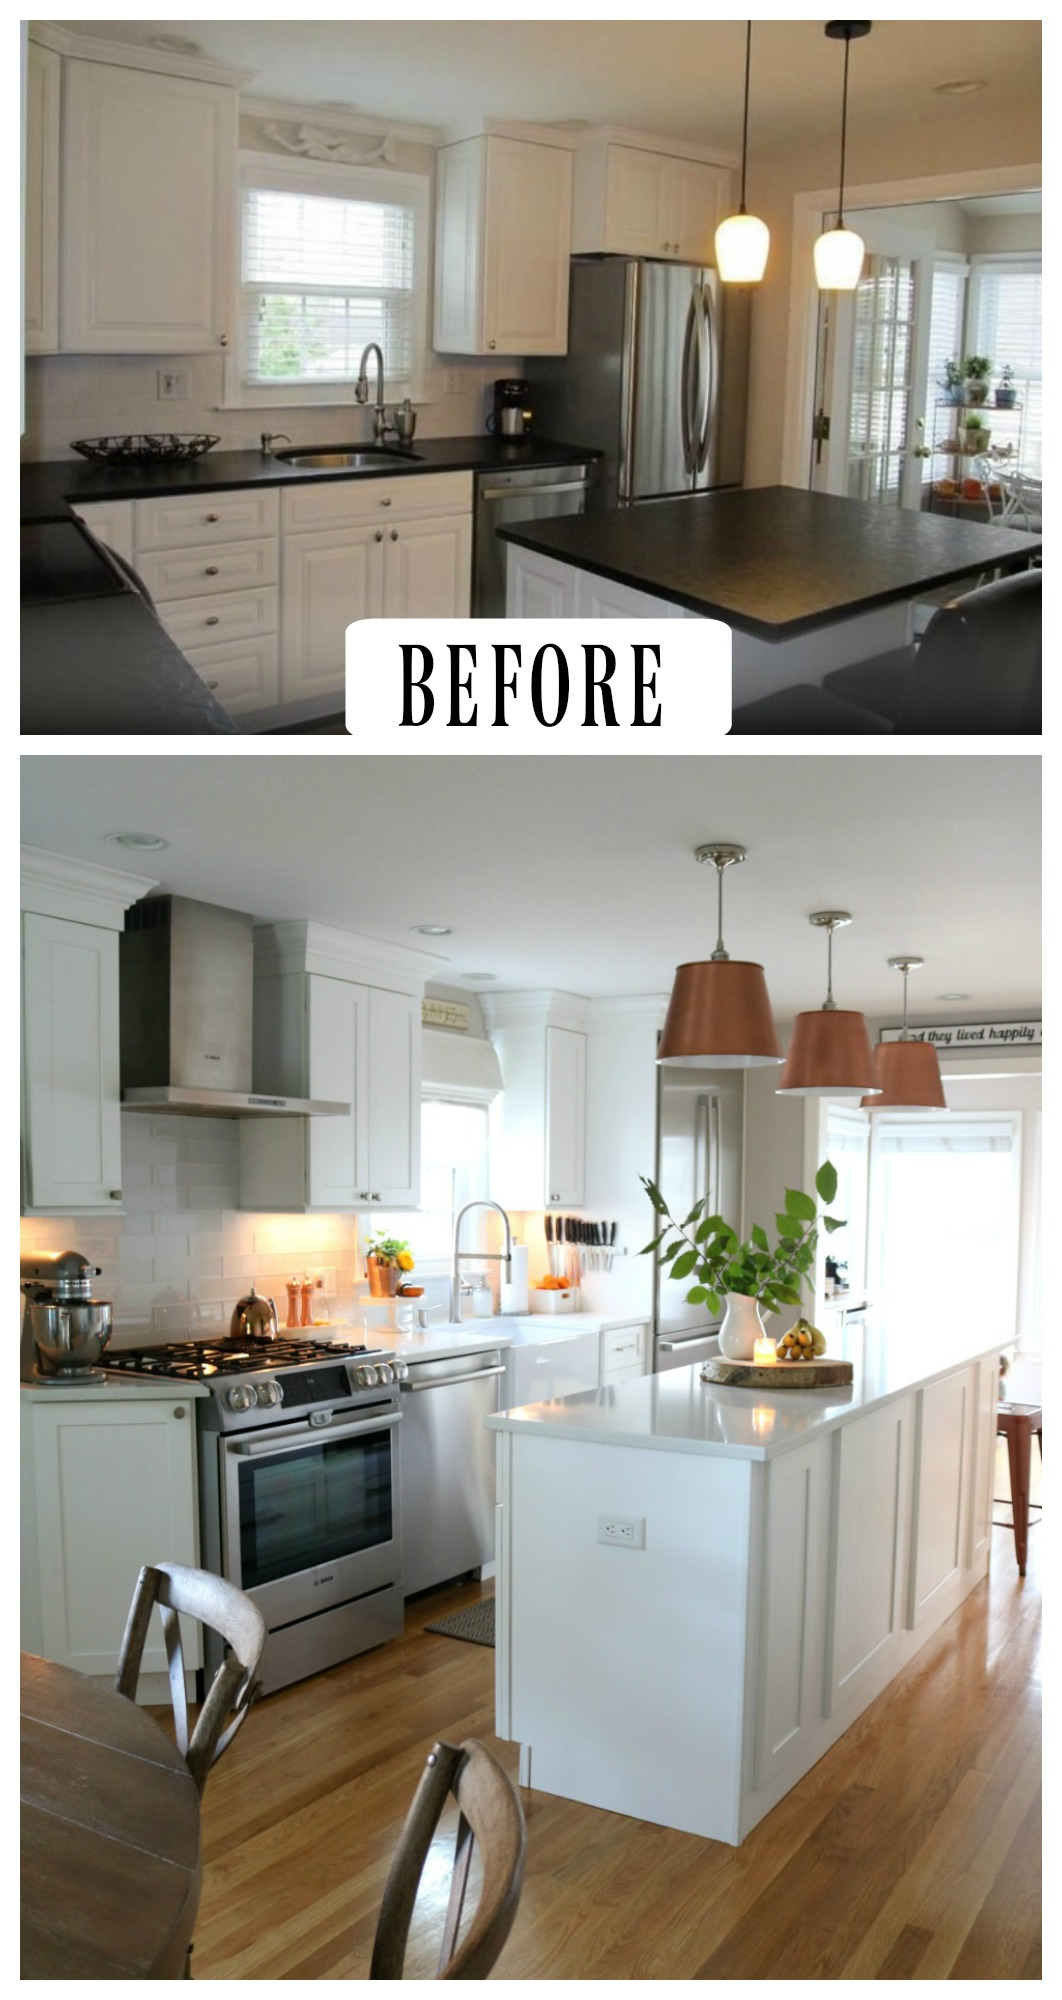 27 Inspiring Kitchen Makeovers- Before and After